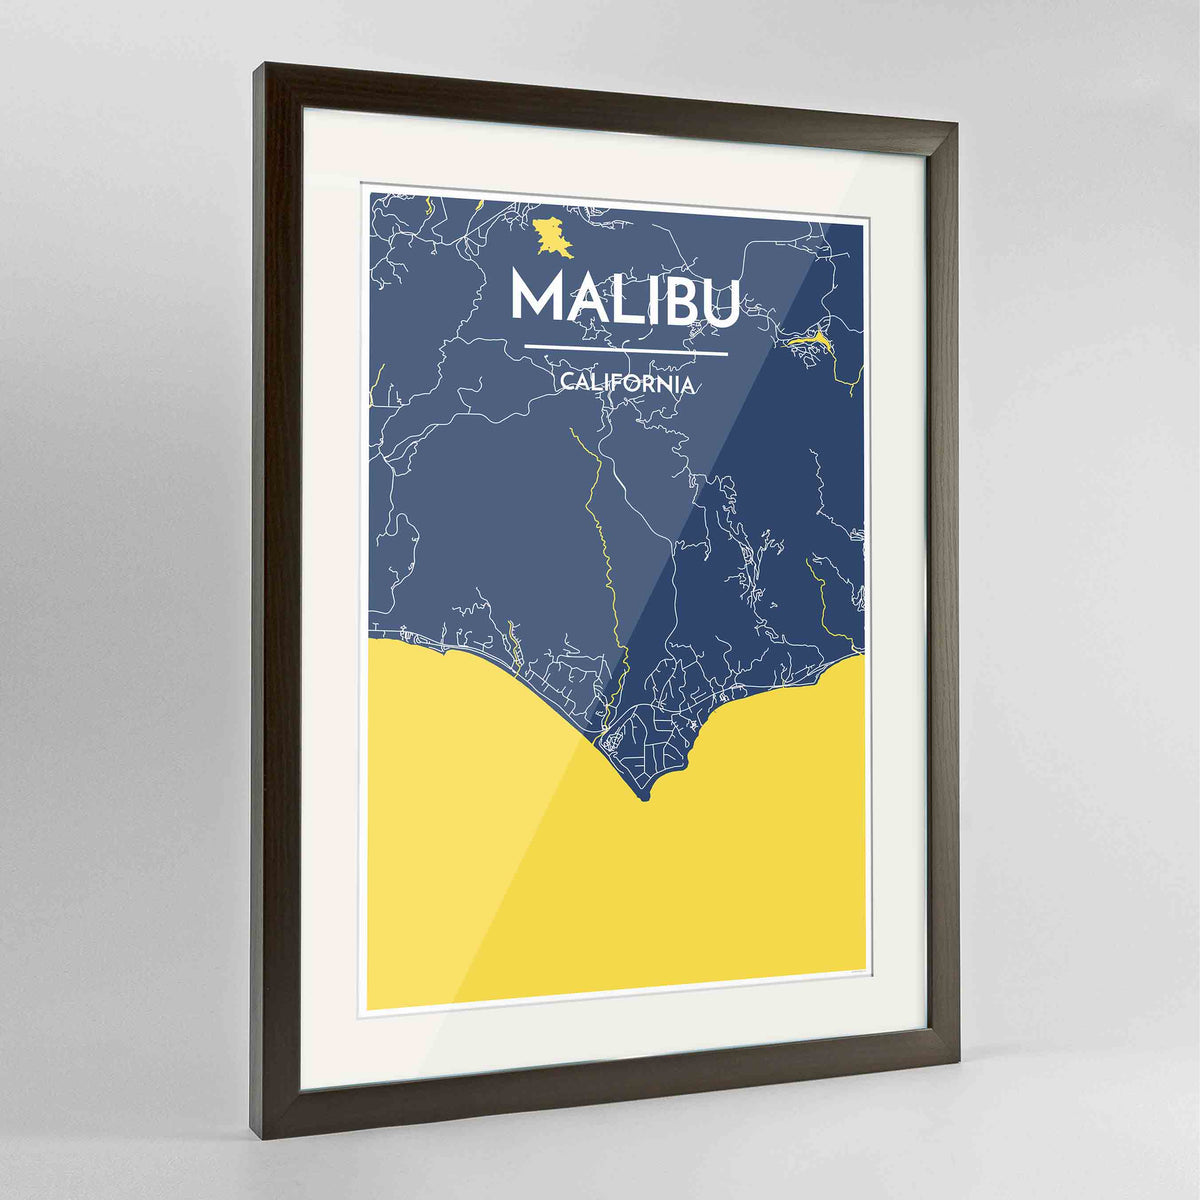 "Framed Malibu Map Art Print 24x36"" Contemporary Walnut frame Point Two Design Group"